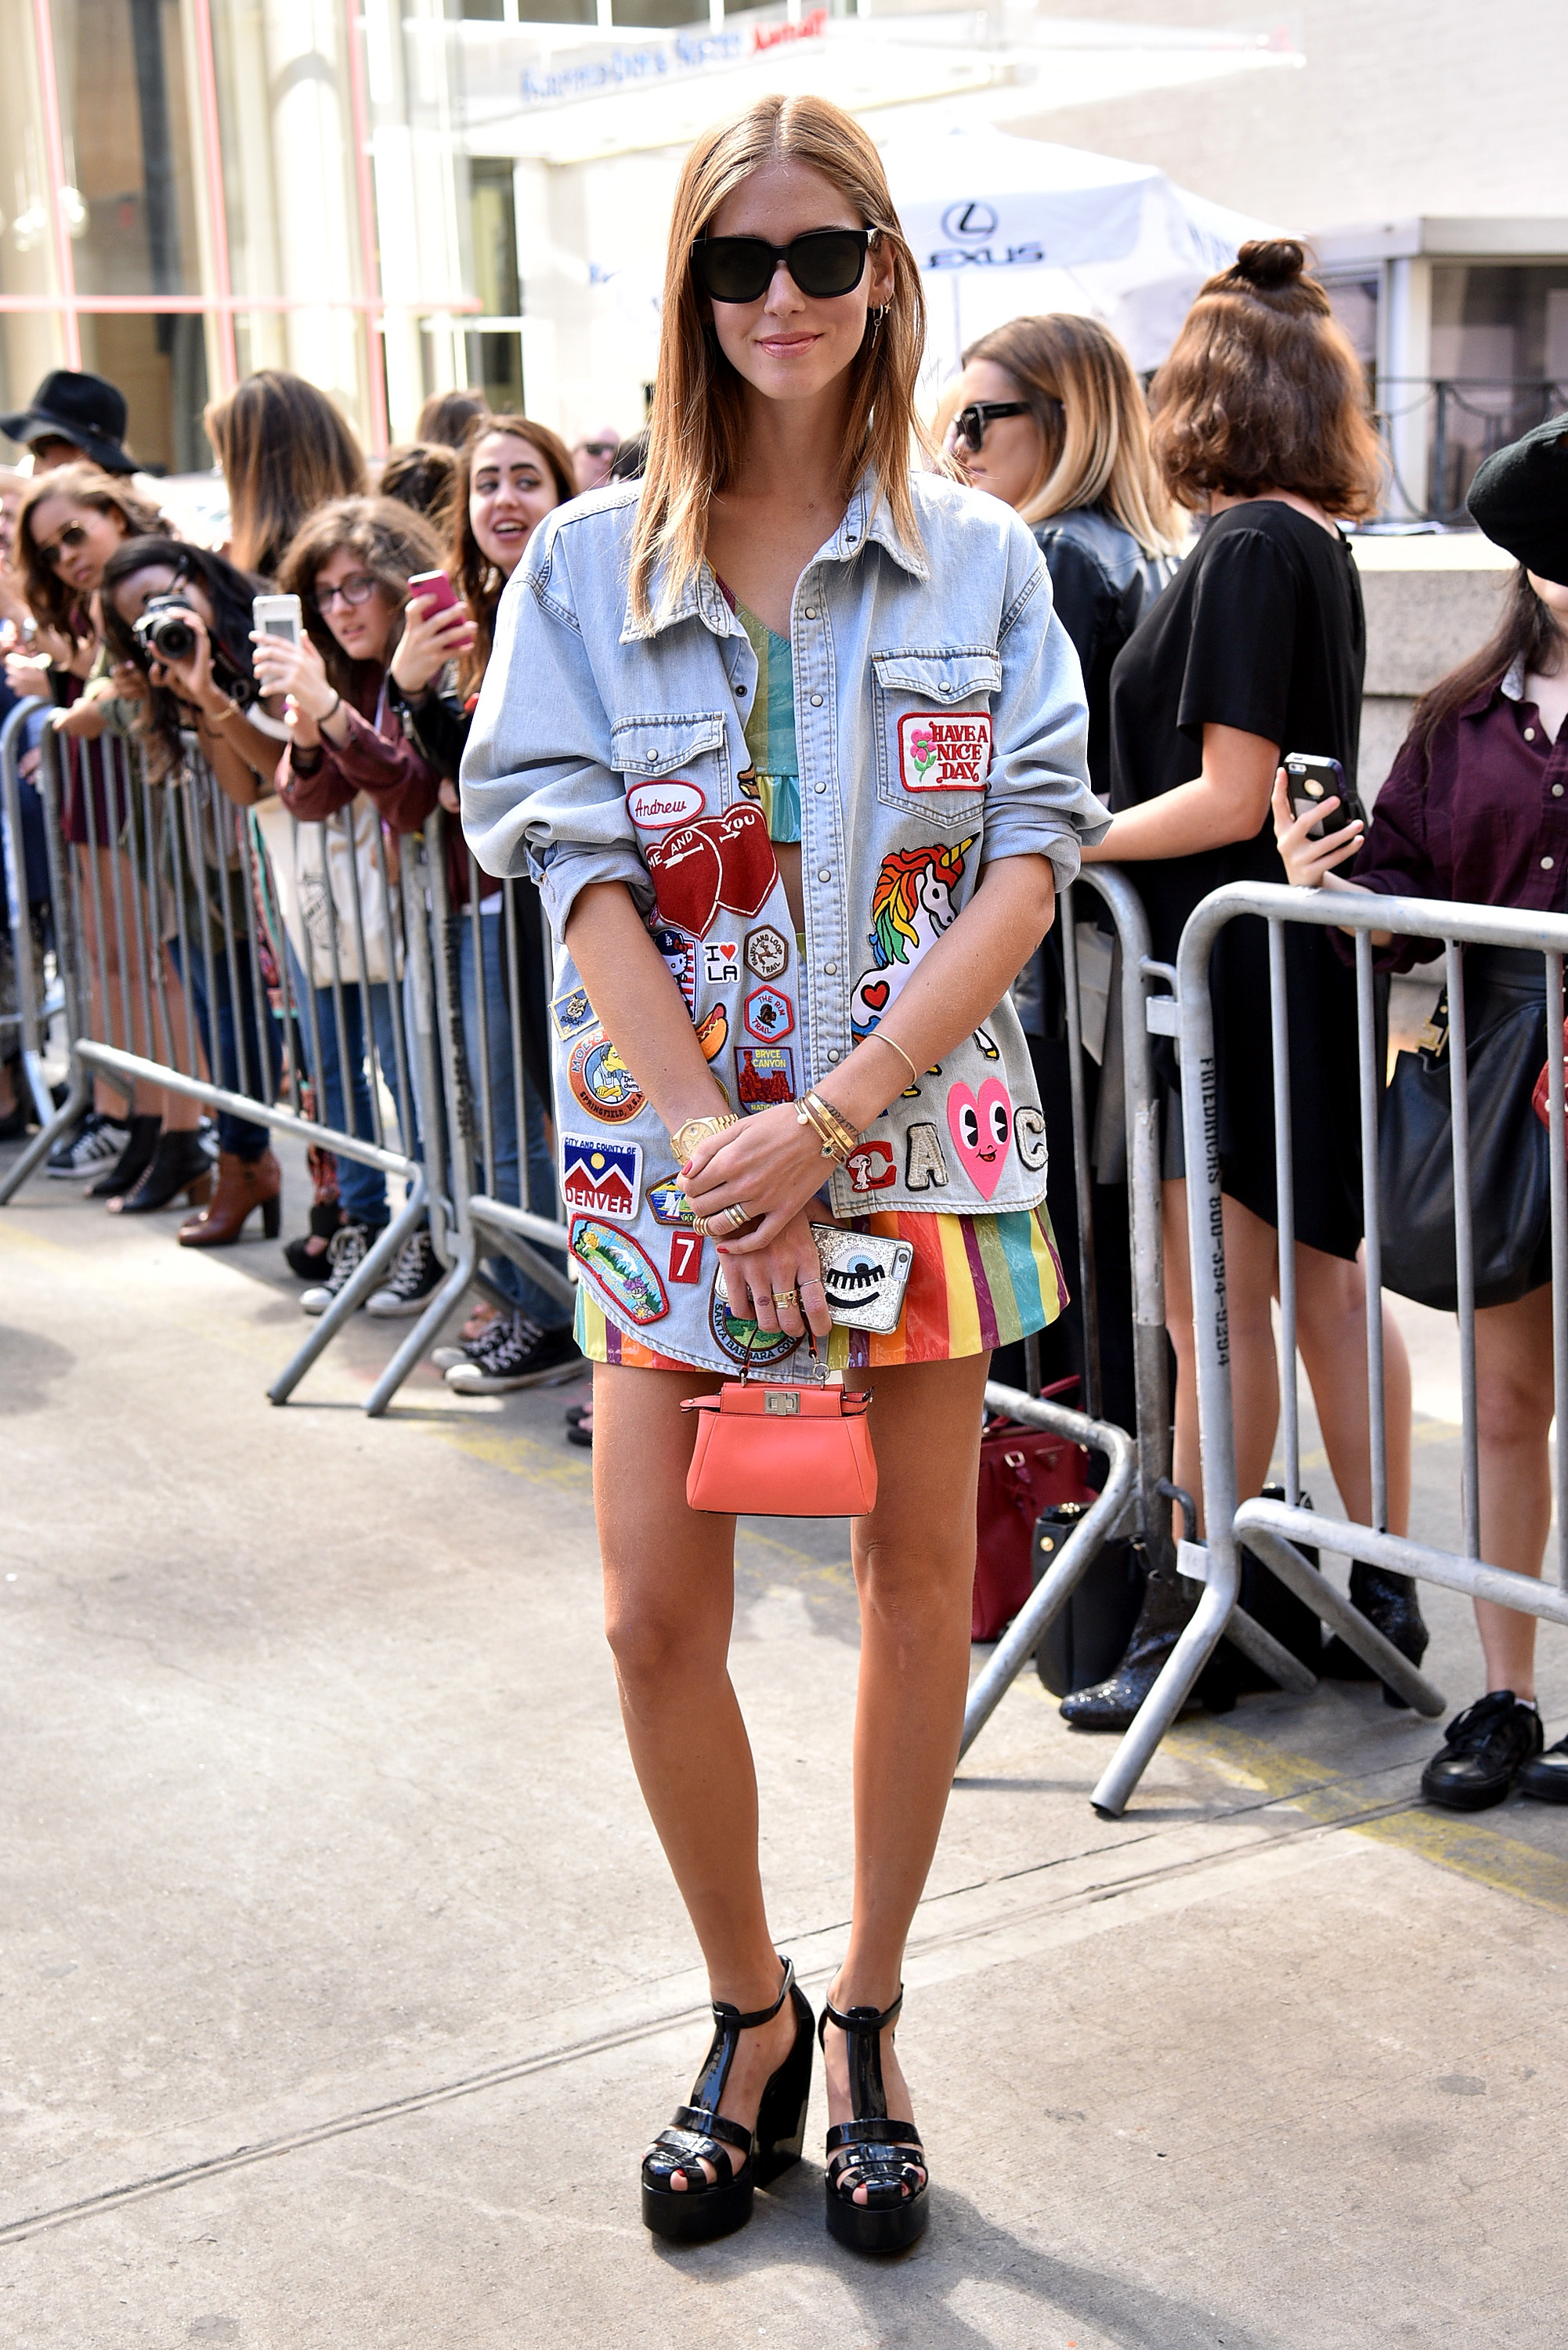 NEW YORK, NY - SEPTEMBER 14: Blogger Chiara Ferragni seen around Spring 2016 New York Fashion Week: The Shows - Day 4 on September 14, 2015 in New York City. (Photo by Bryan Bedder/Getty Images)